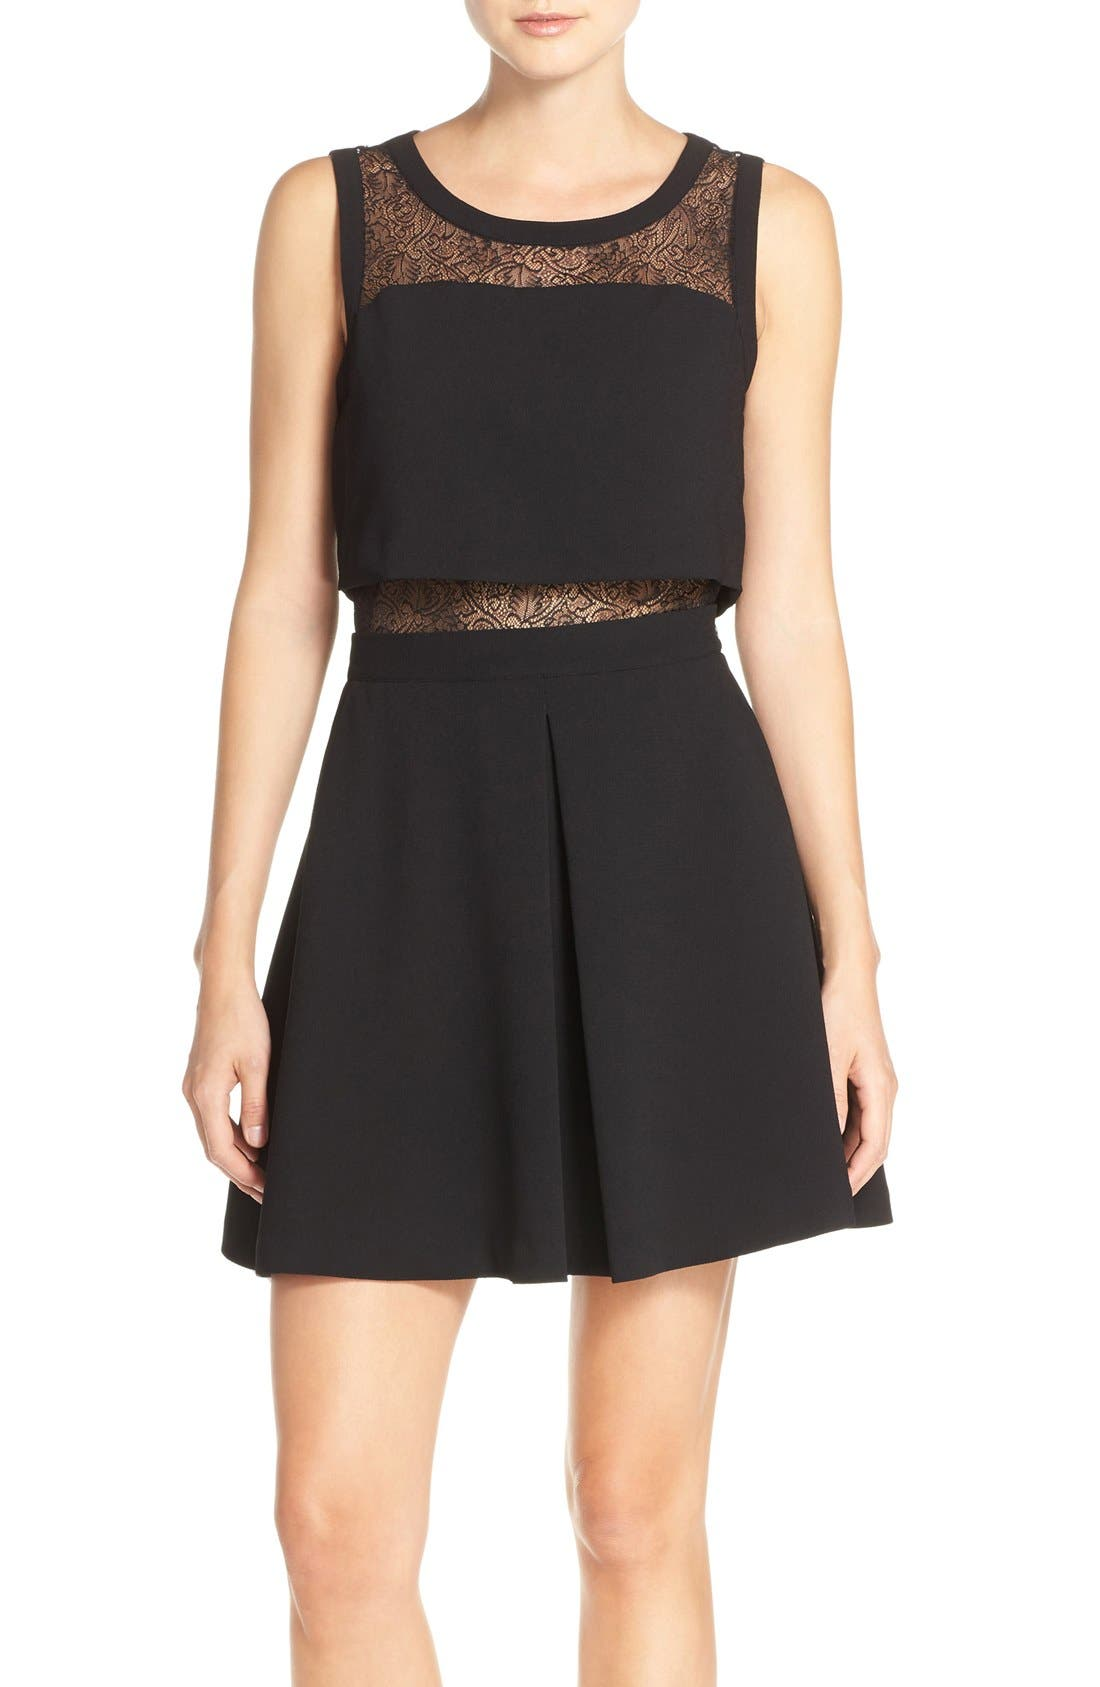 Main Image - Chelsea28 Lace Inset Two-Piece Dress